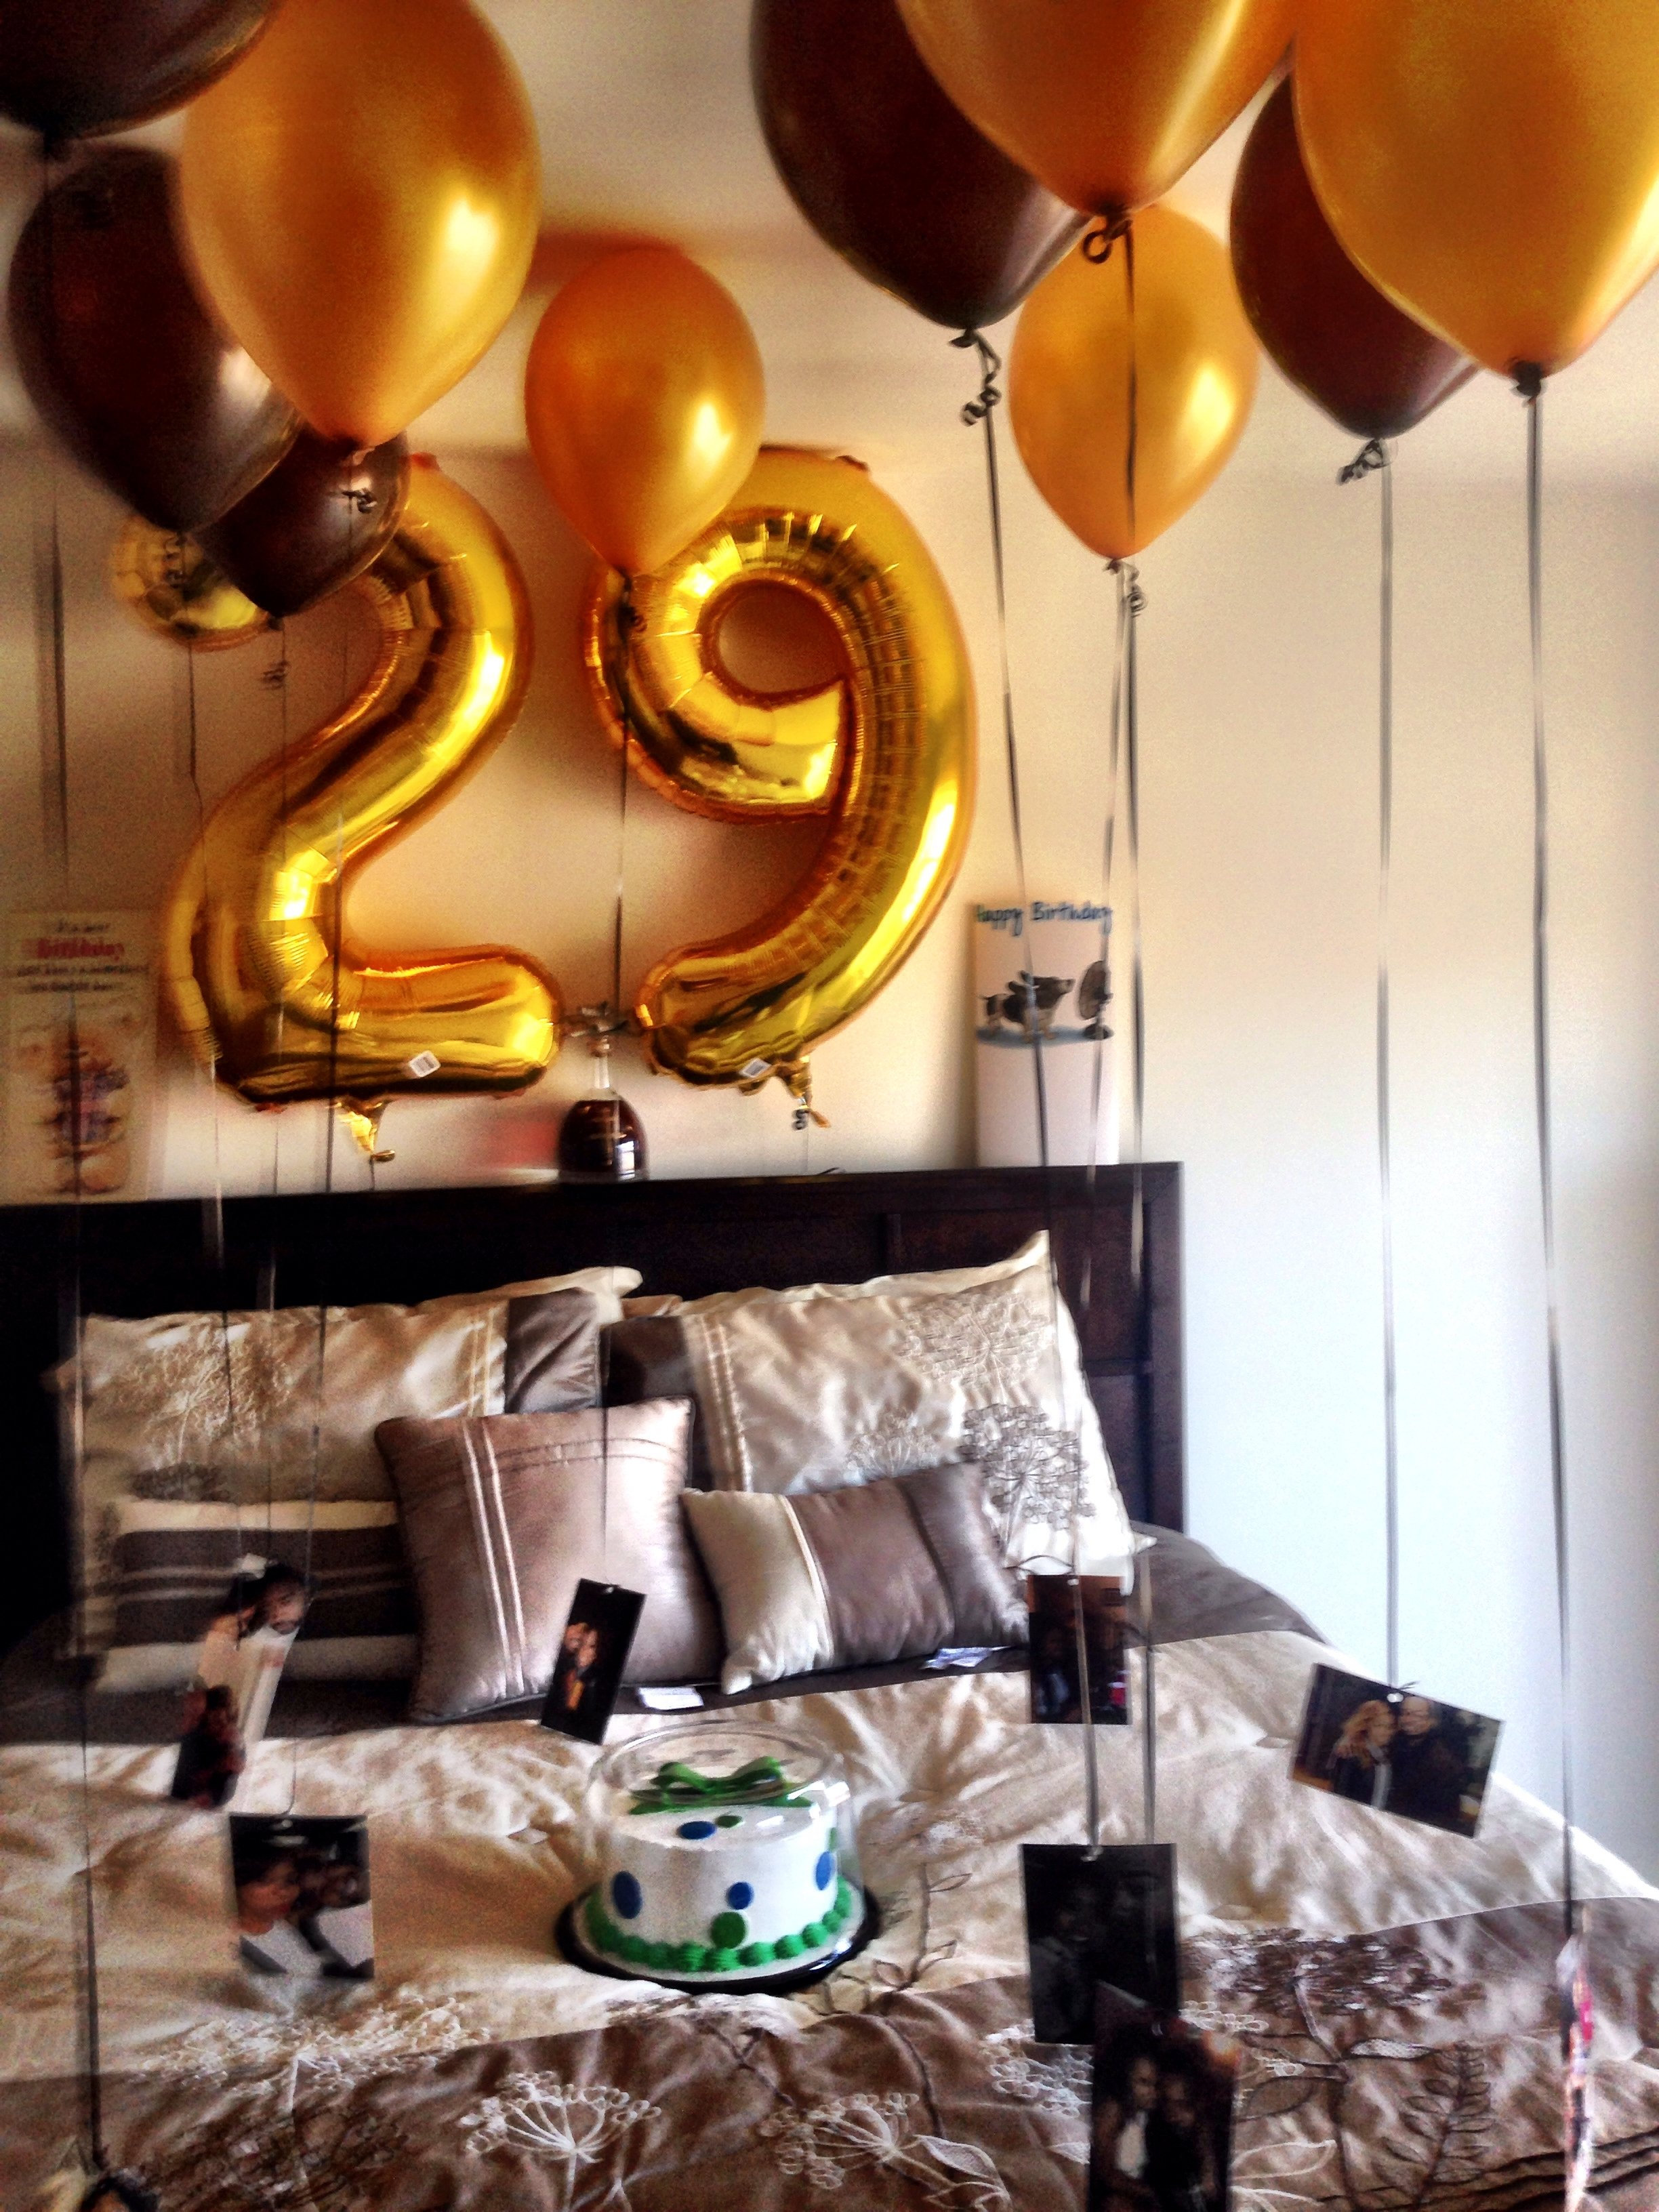 boyfriends birthday | birthdays | pinterest | boyfriends, birthdays